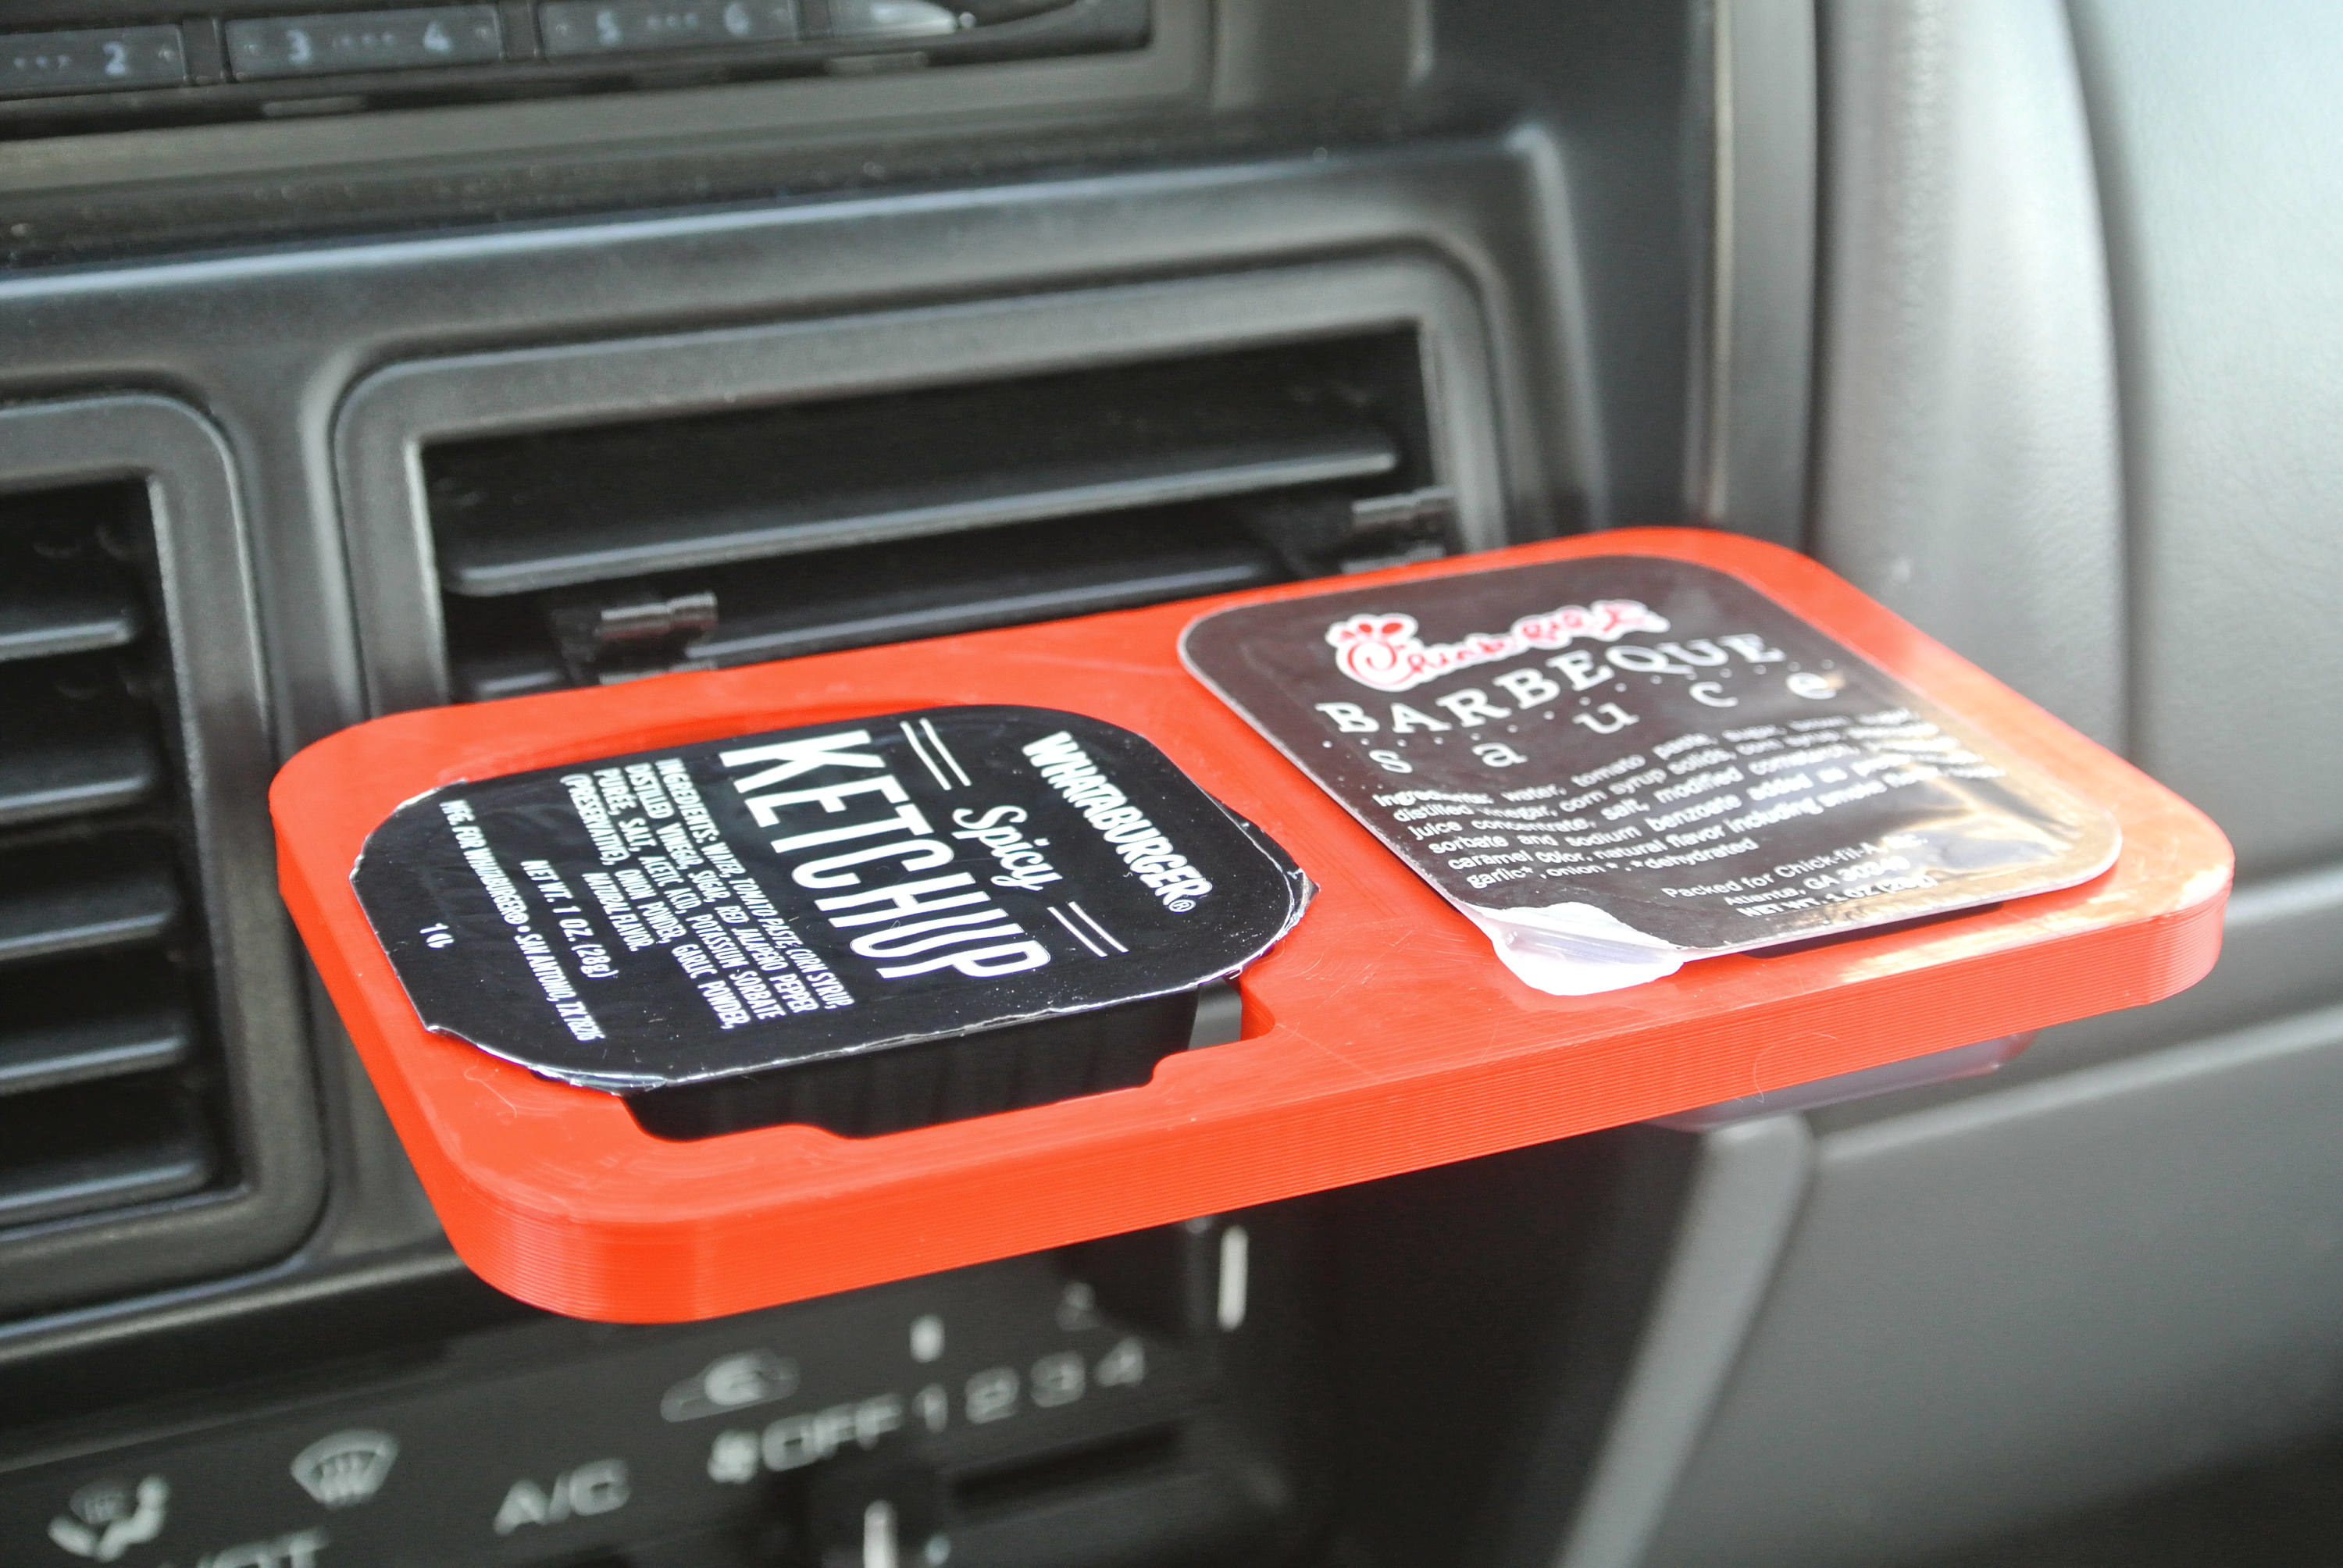 A dip clip holding sauce from Chick-fil-A and Whataburger